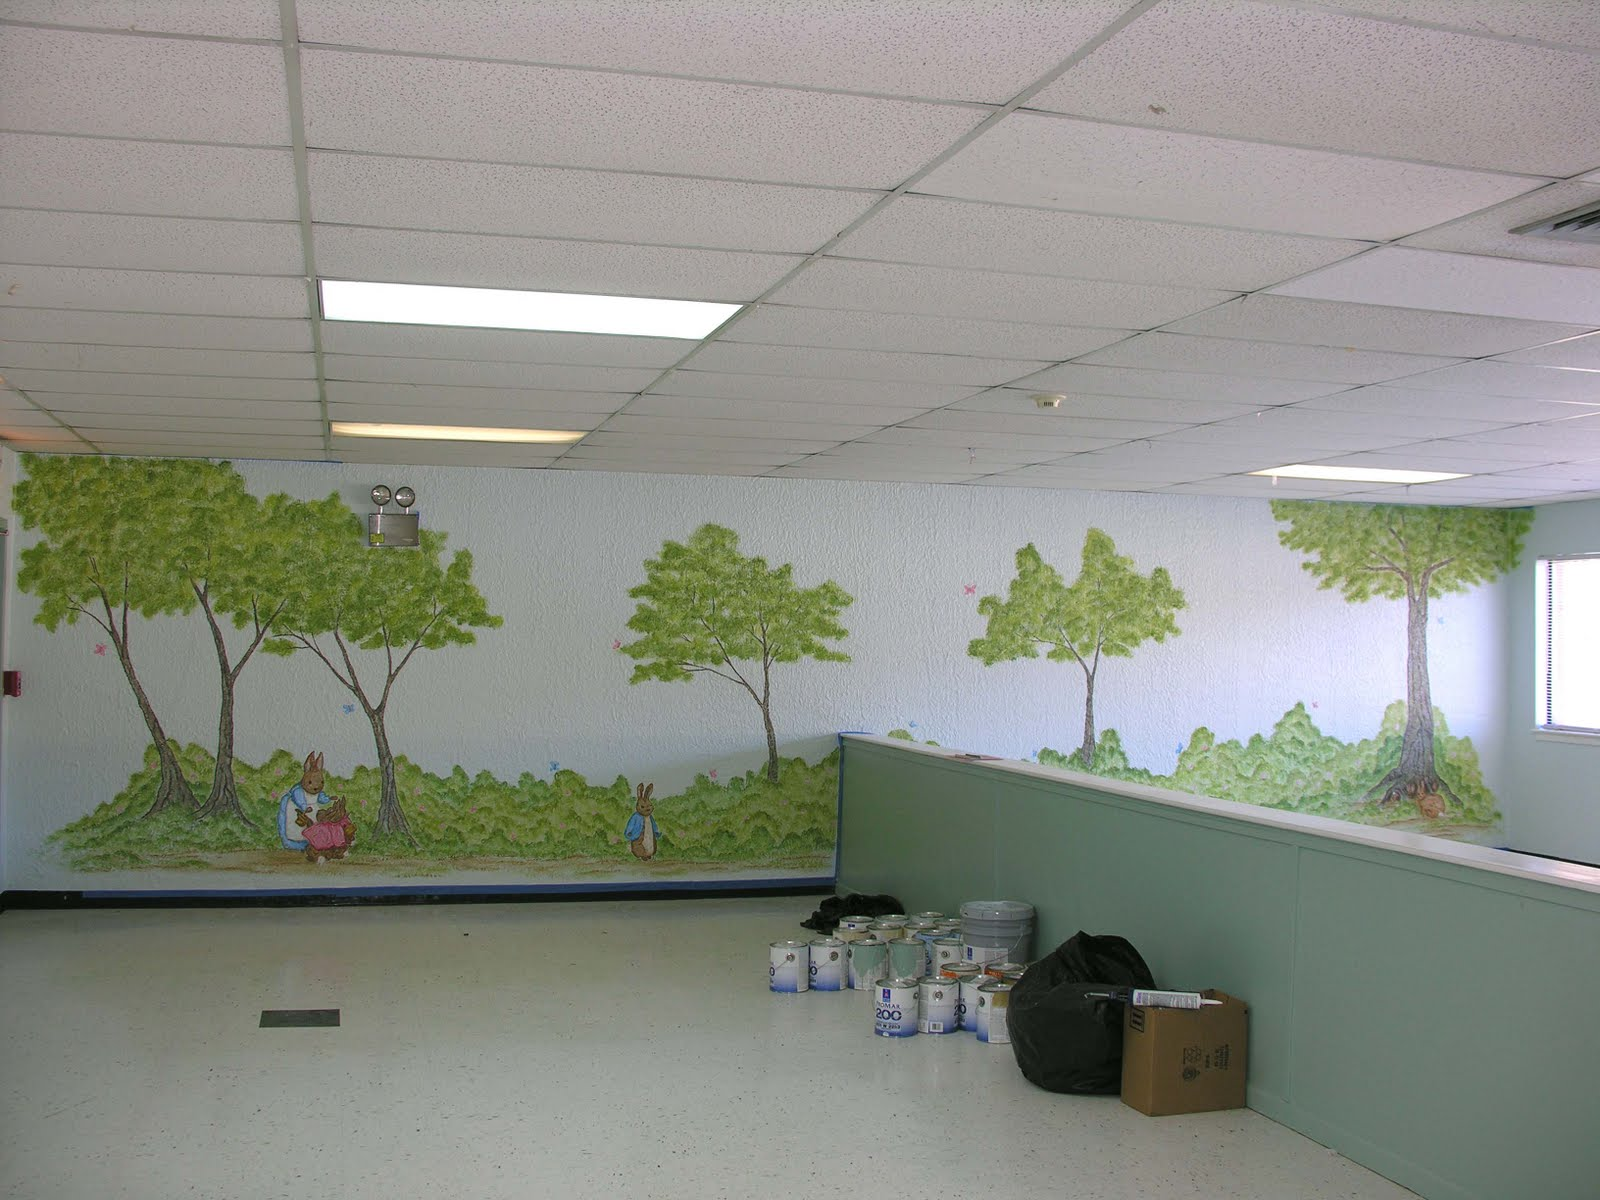 Liza bean designs peter rabbit nursery for the first step peter rabbit nursery for the first step learning center amipublicfo Images